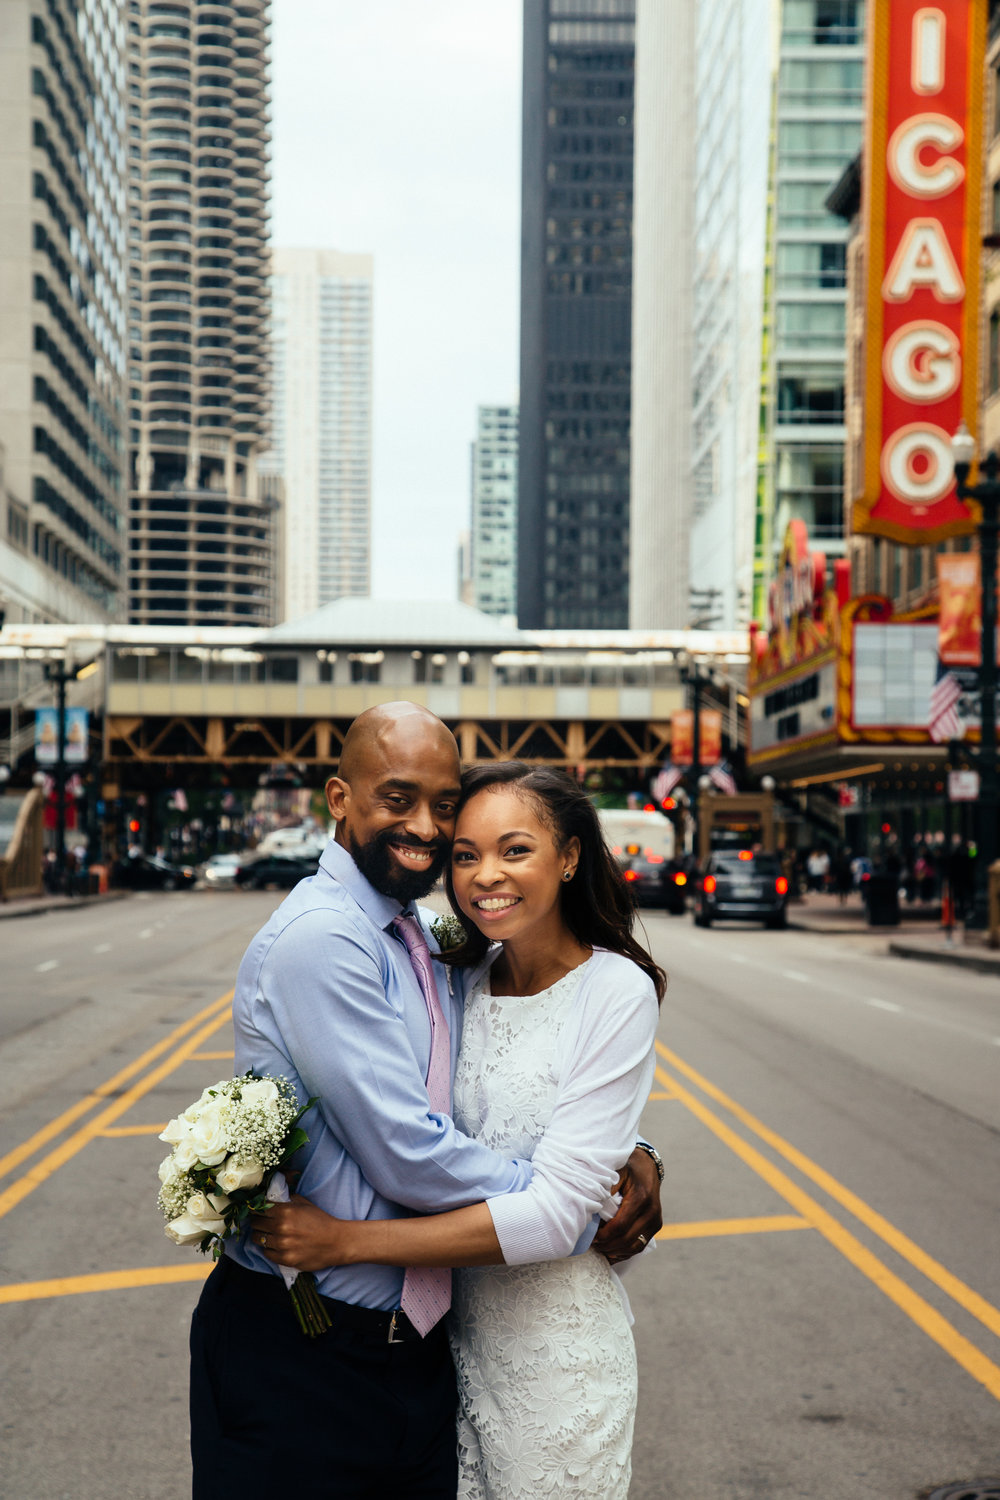 chicago_elopement_tony_brittany-10.jpg